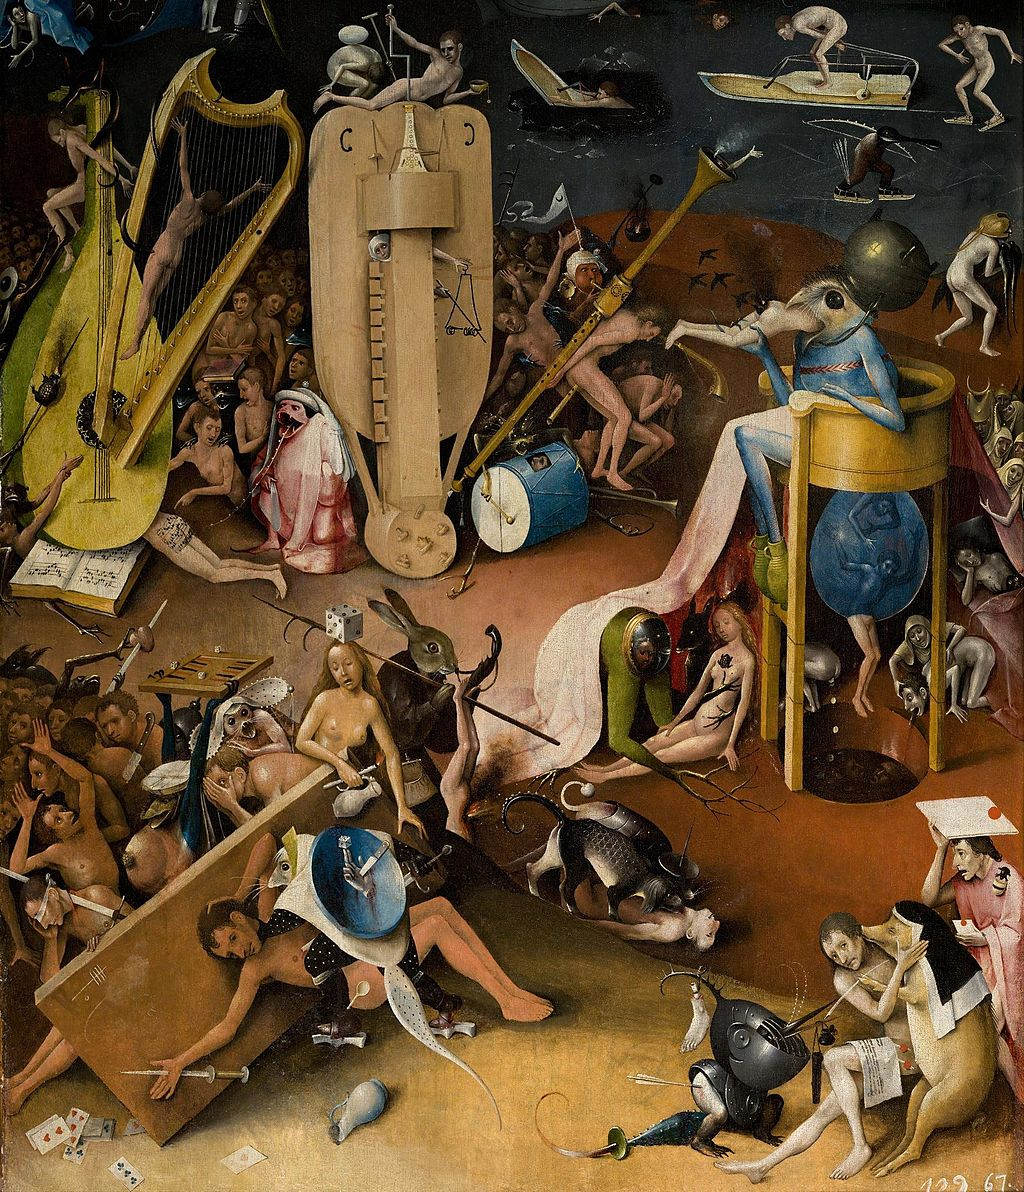 A hurdy-gurdy, or humpenscrump stands in Hieronymus Bosch's The Garden of Earthly Delights